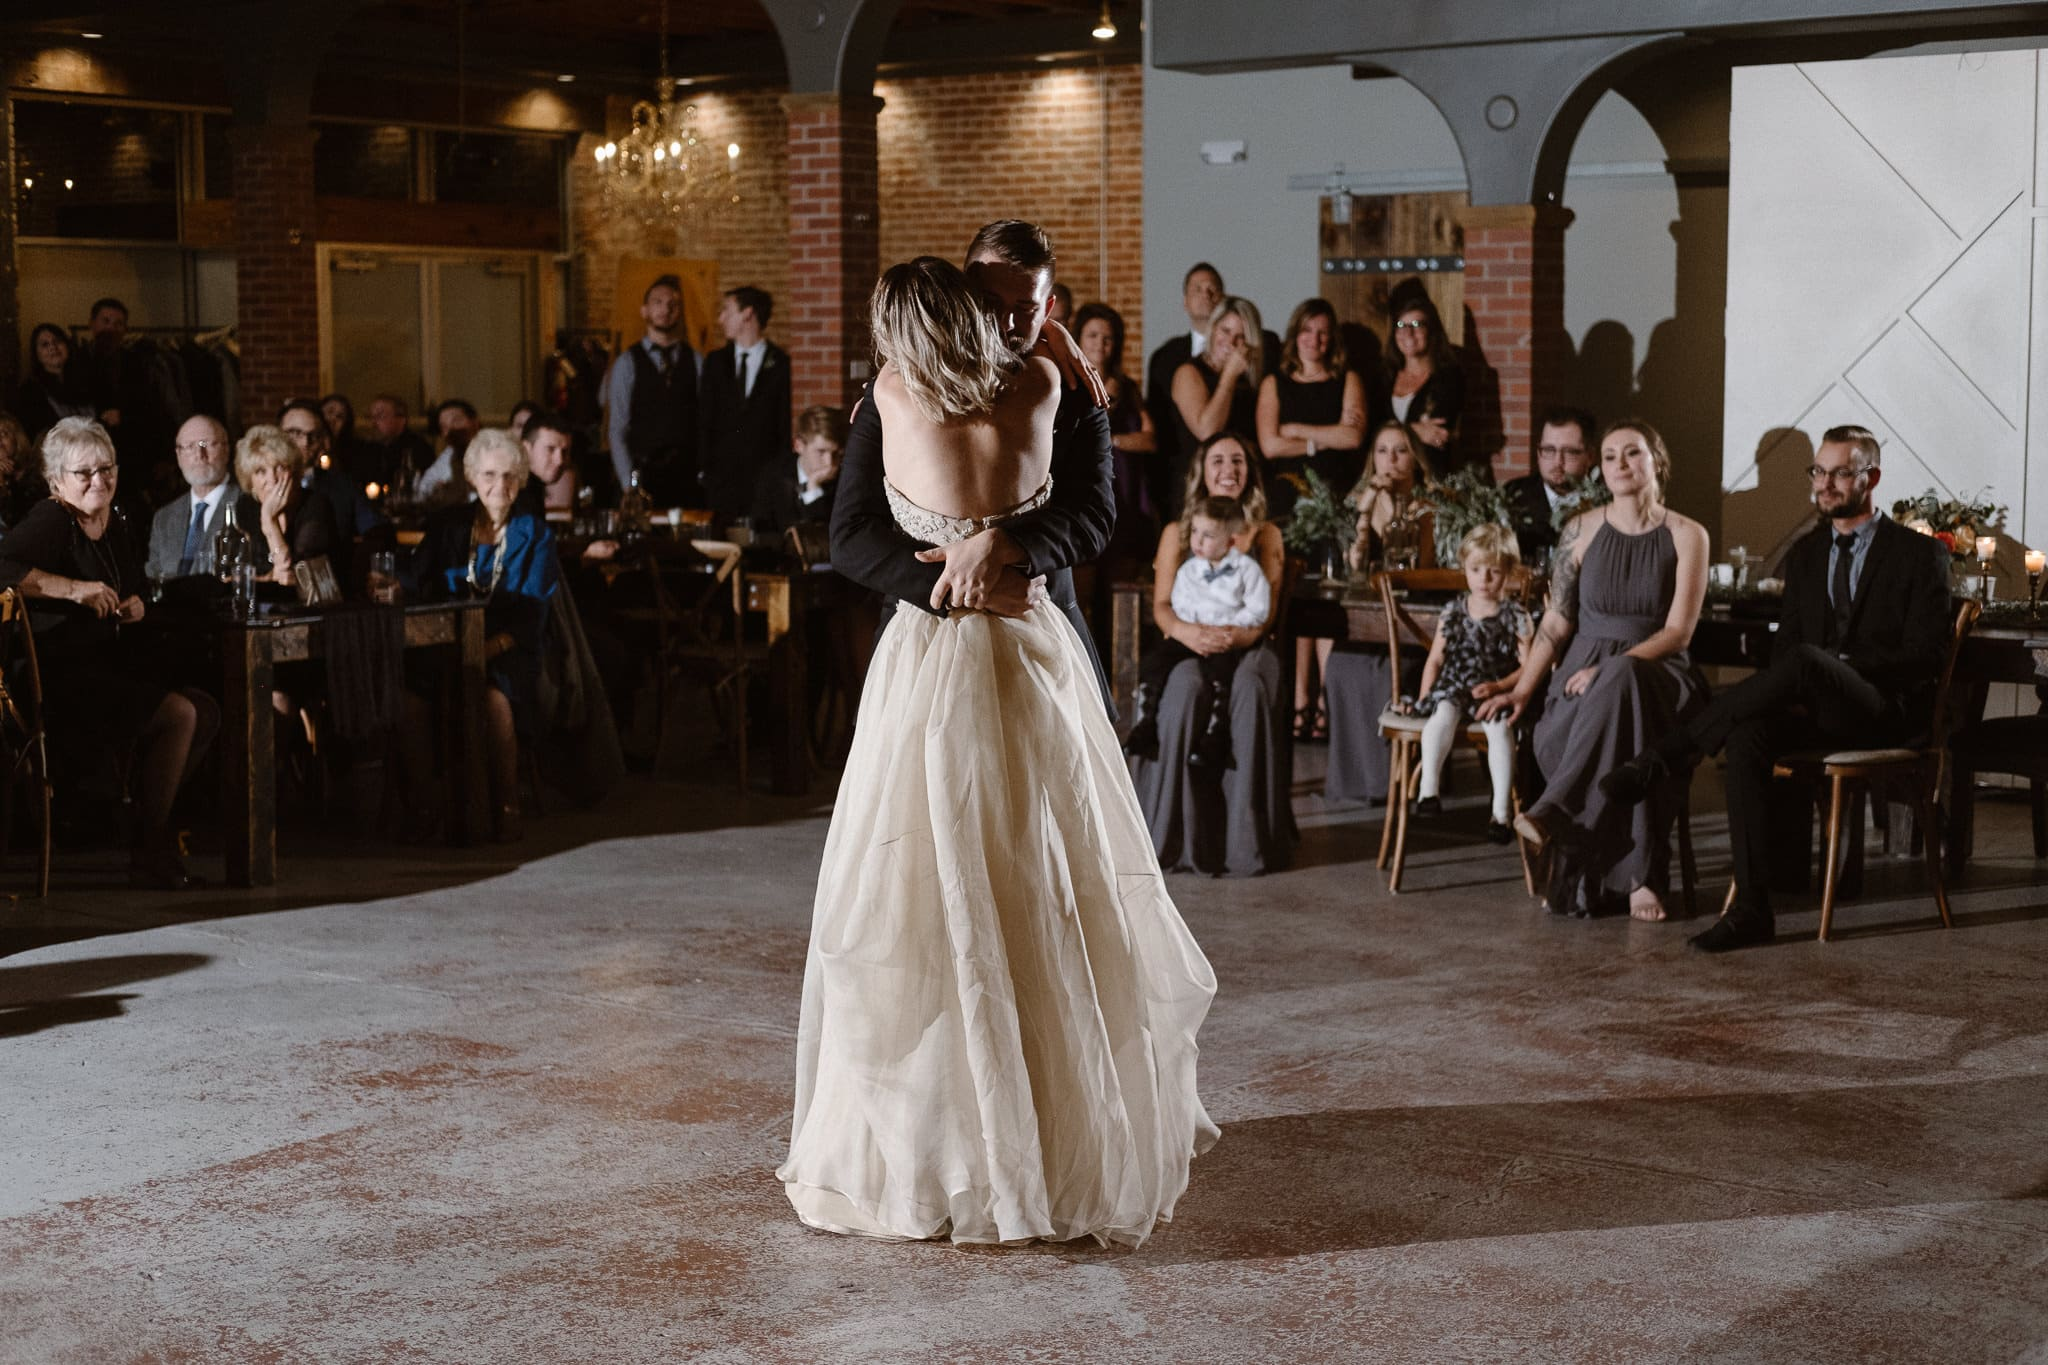 St Vrain Wedding Photographer | Longmont Wedding Photographer | Colorado Winter Wedding Photographer, Colorado industrial chic wedding ceremony, bride and groom first dance, off camera flash photography reception lighting